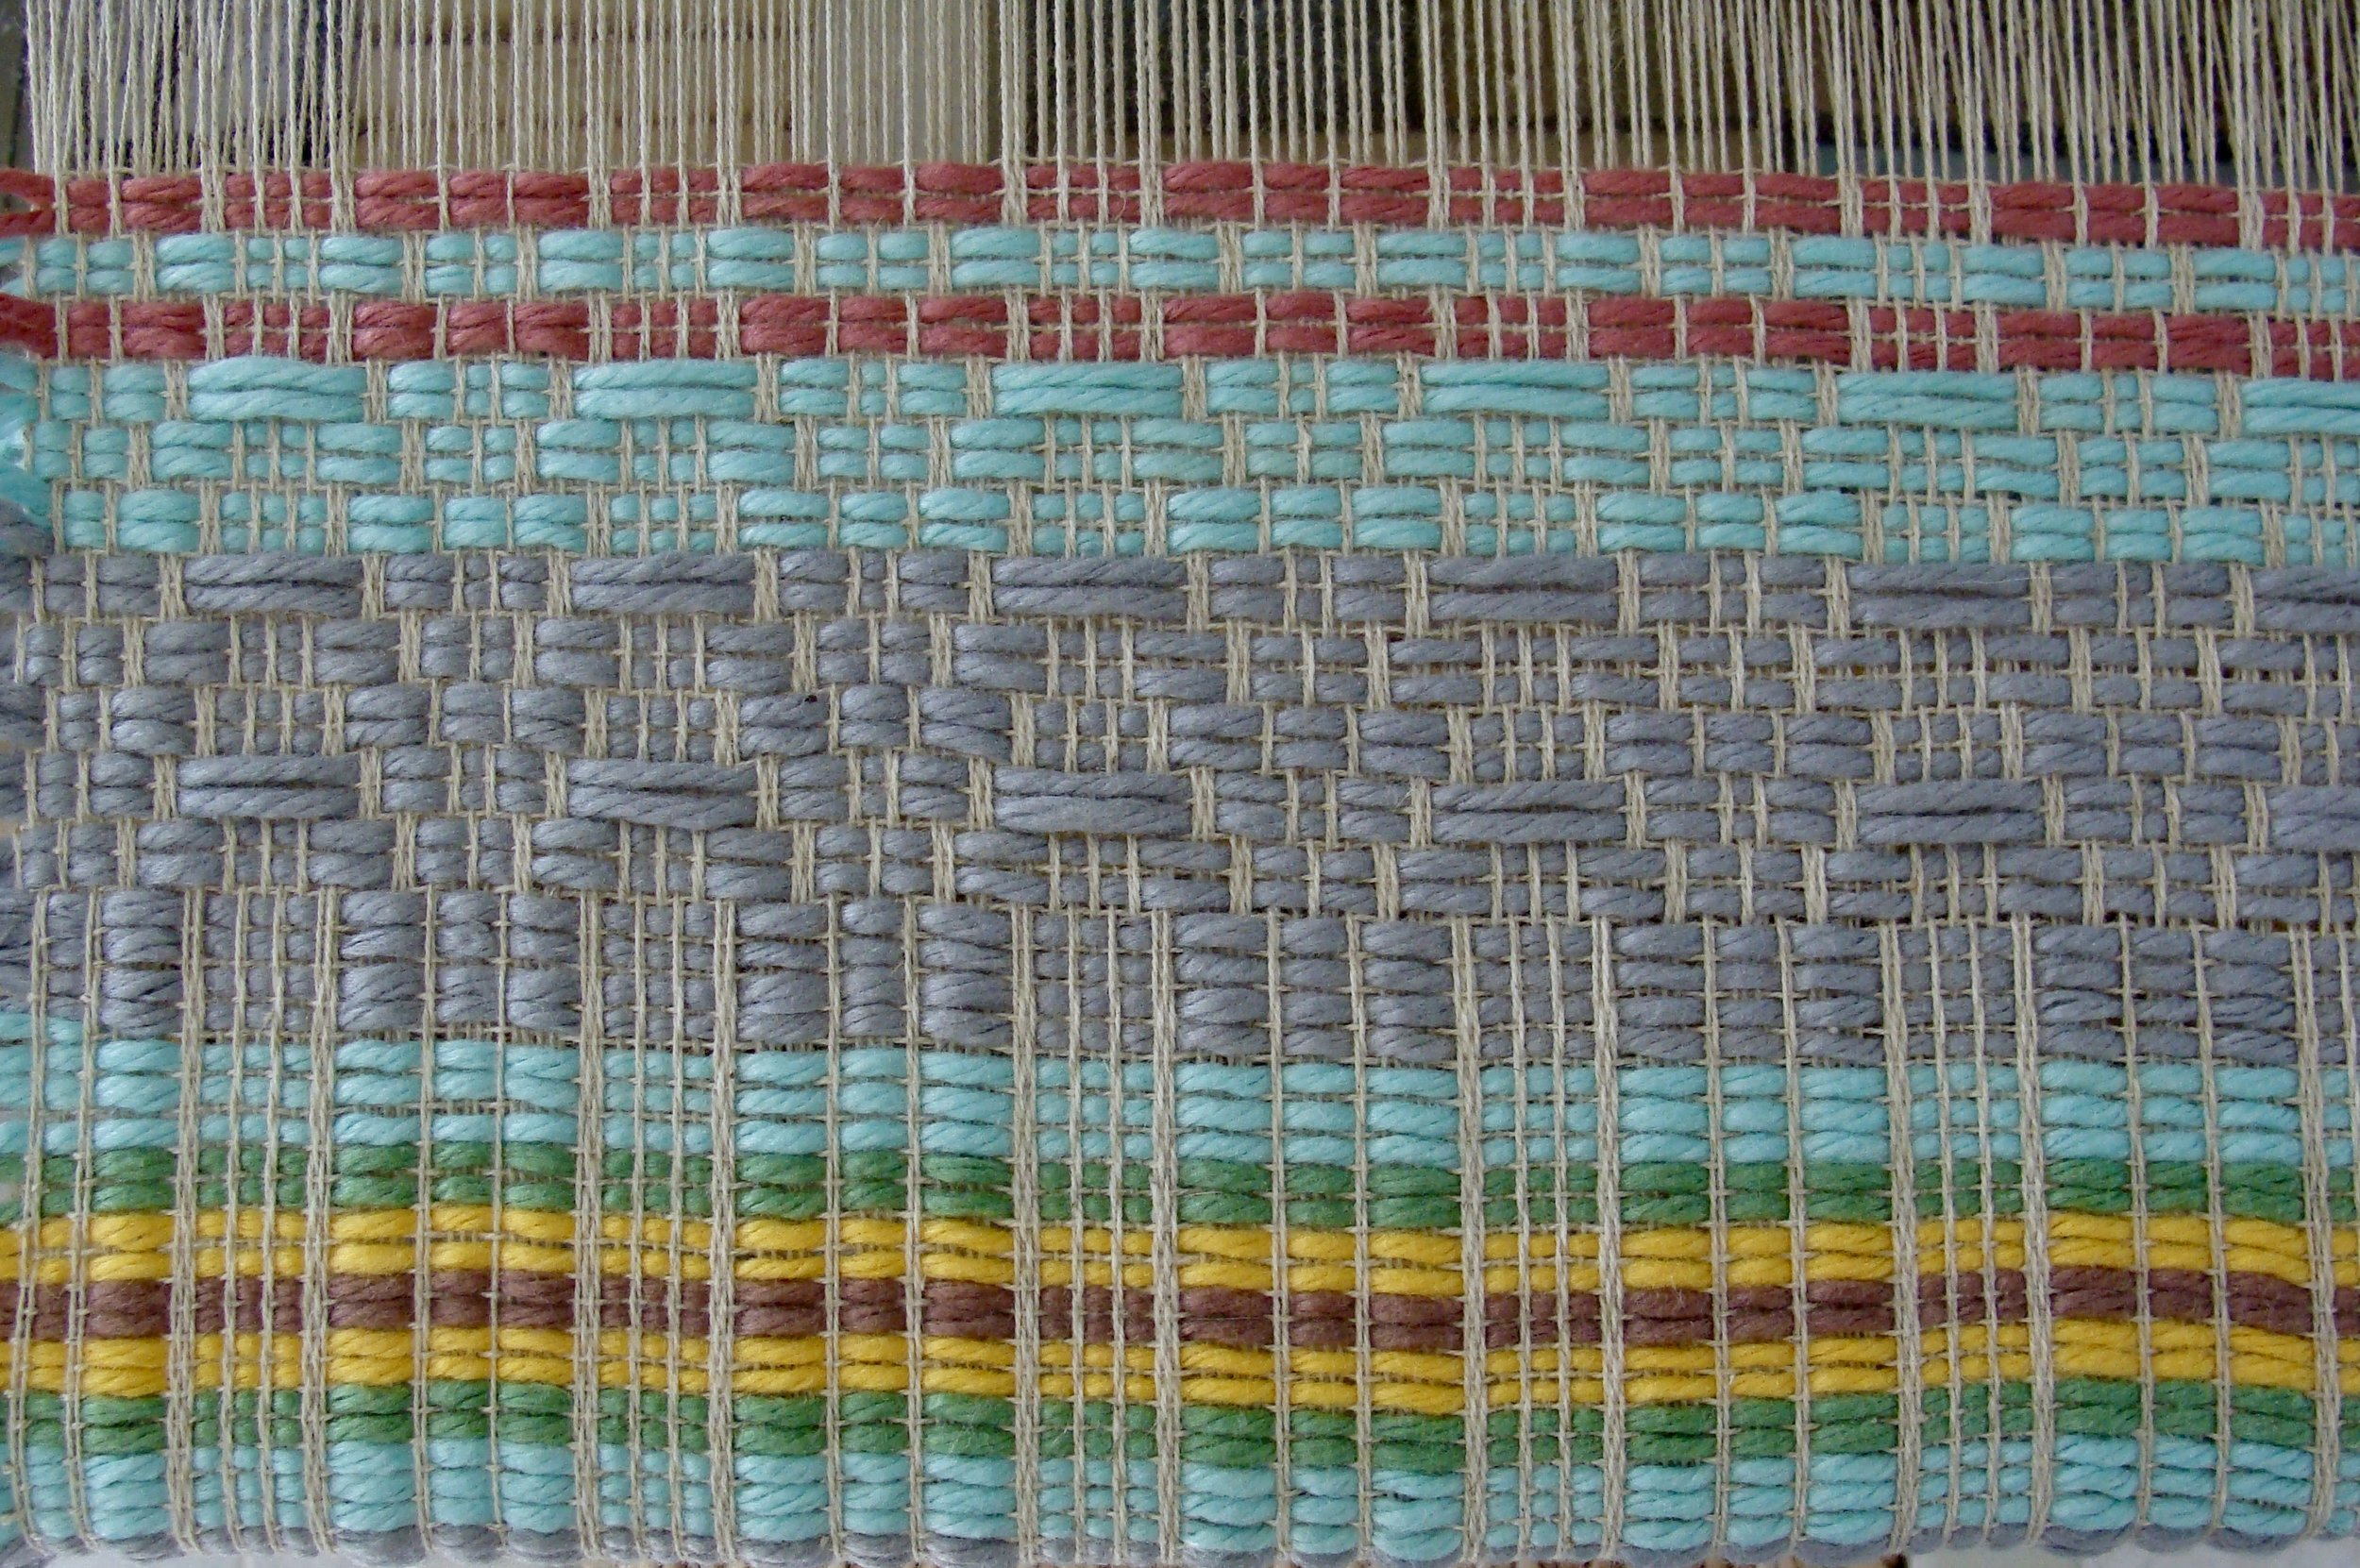 telemarksteppe weave on loom